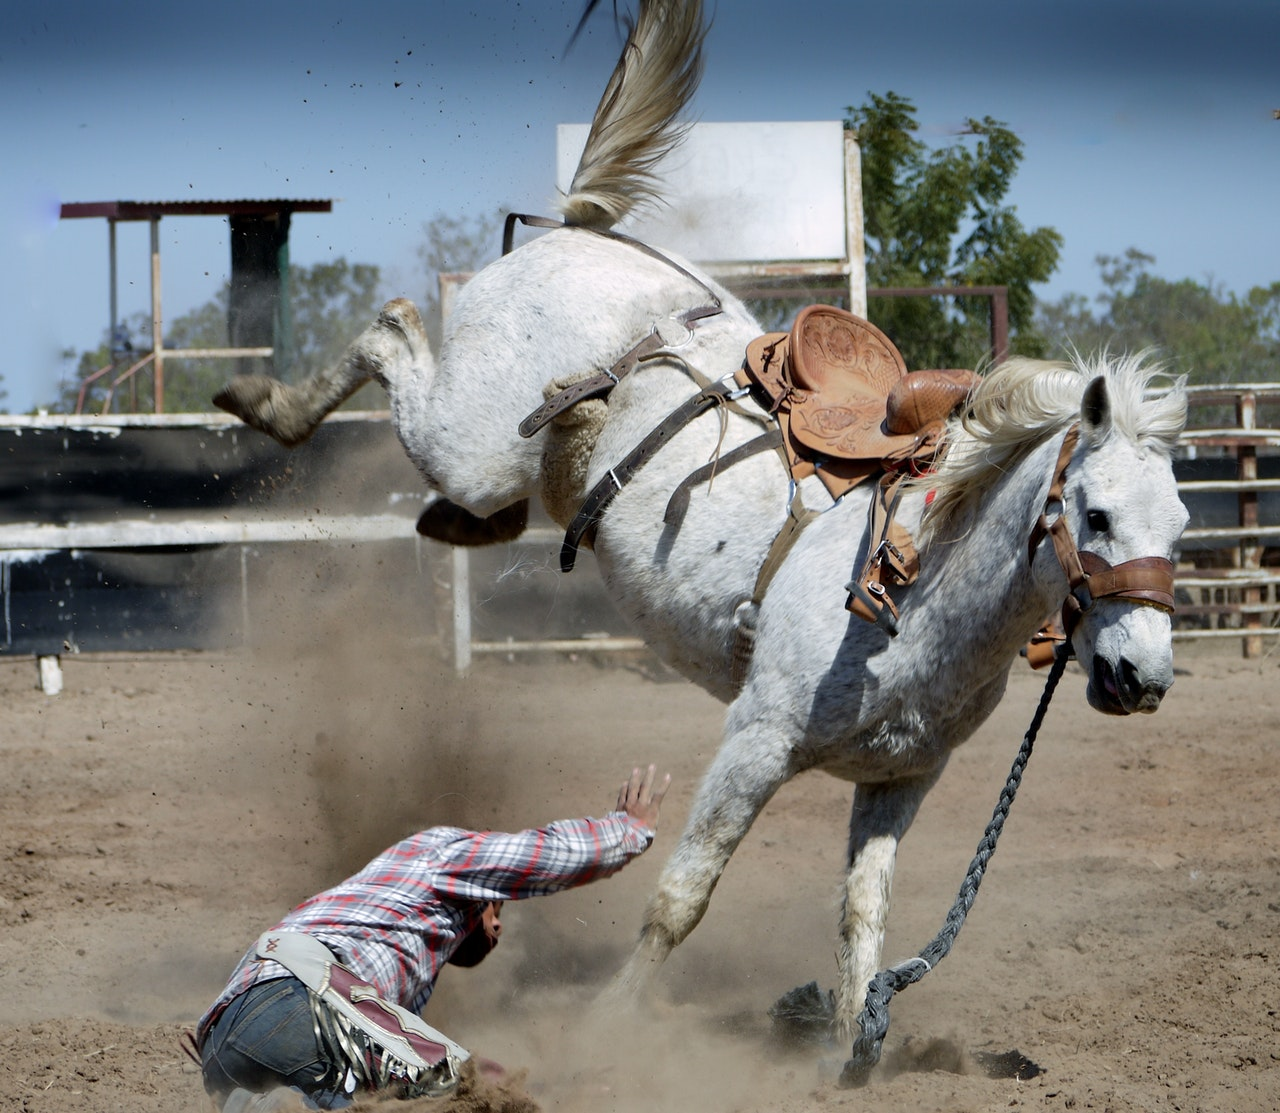 What if a fallen rider never got back on the horse? -